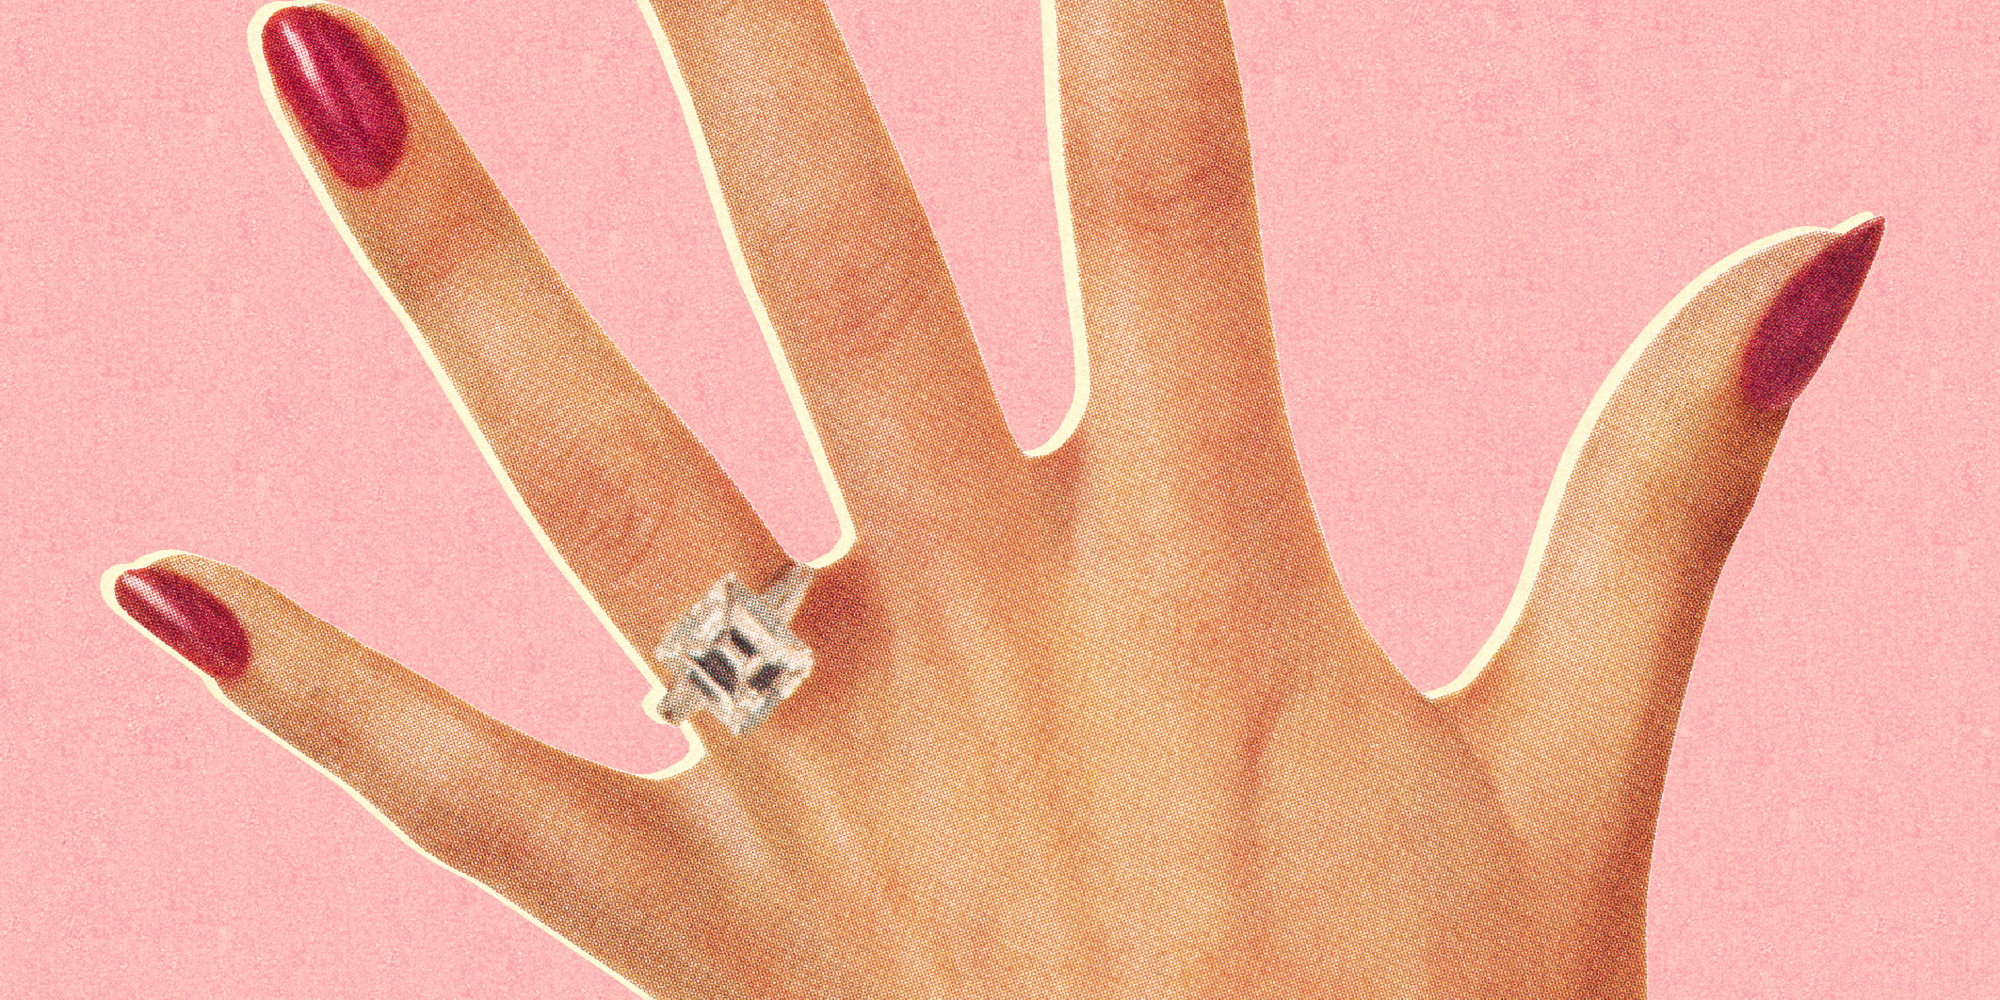 Are Engagement Rings Really \'Barbaric\'? | HuffPost